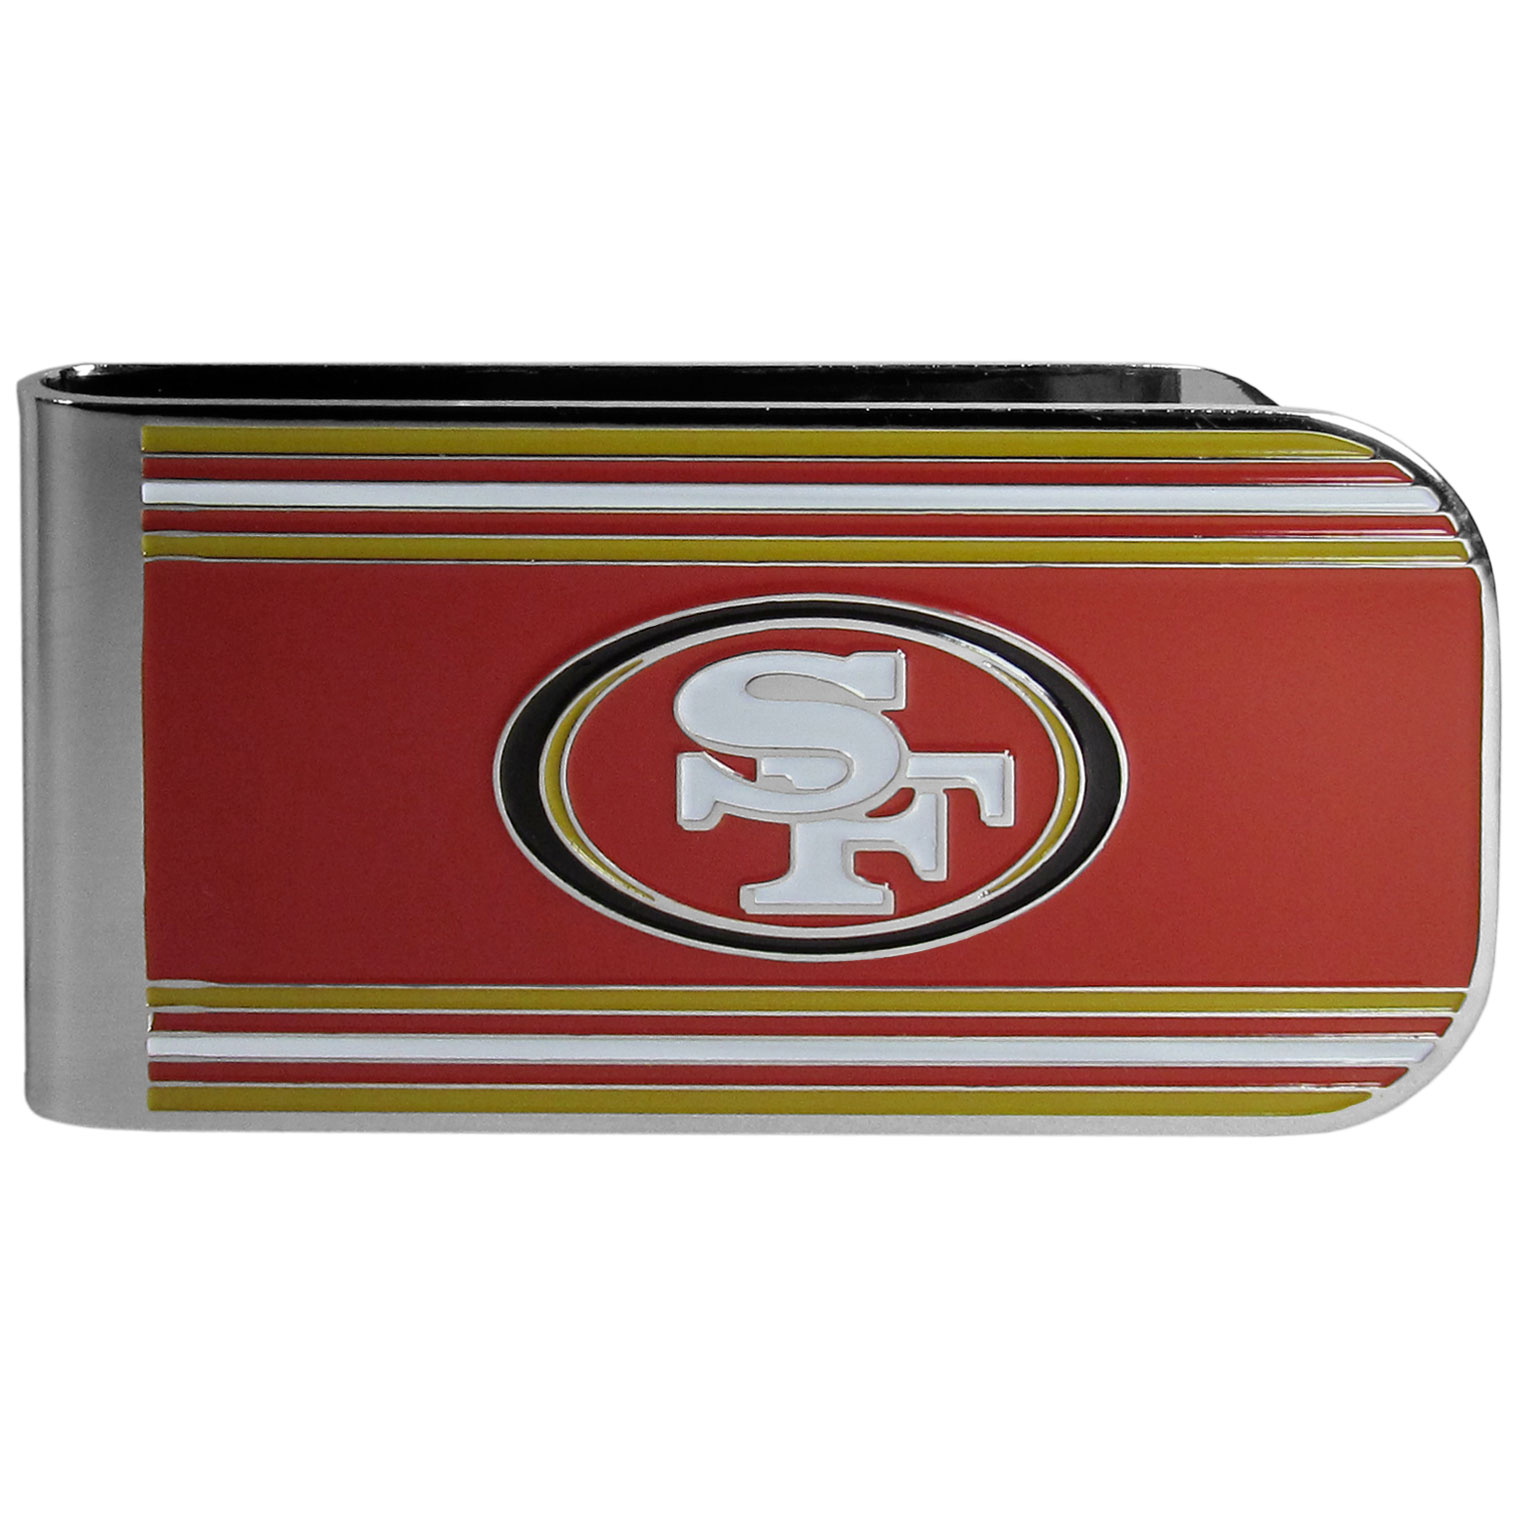 San Francisco 49ers MVP Money Clip - Our MVP money clip is made of high quality steel with a chrome overlay and enameled team colors and logo. The exceptional craftmanship on this piece makes it a men's fashion accessory that any fan would be proud to own. The cast detail in the San Francisco 49ers logo is perfectly detailed. The clip features an inner spring to hold your cash and cards securely in place.